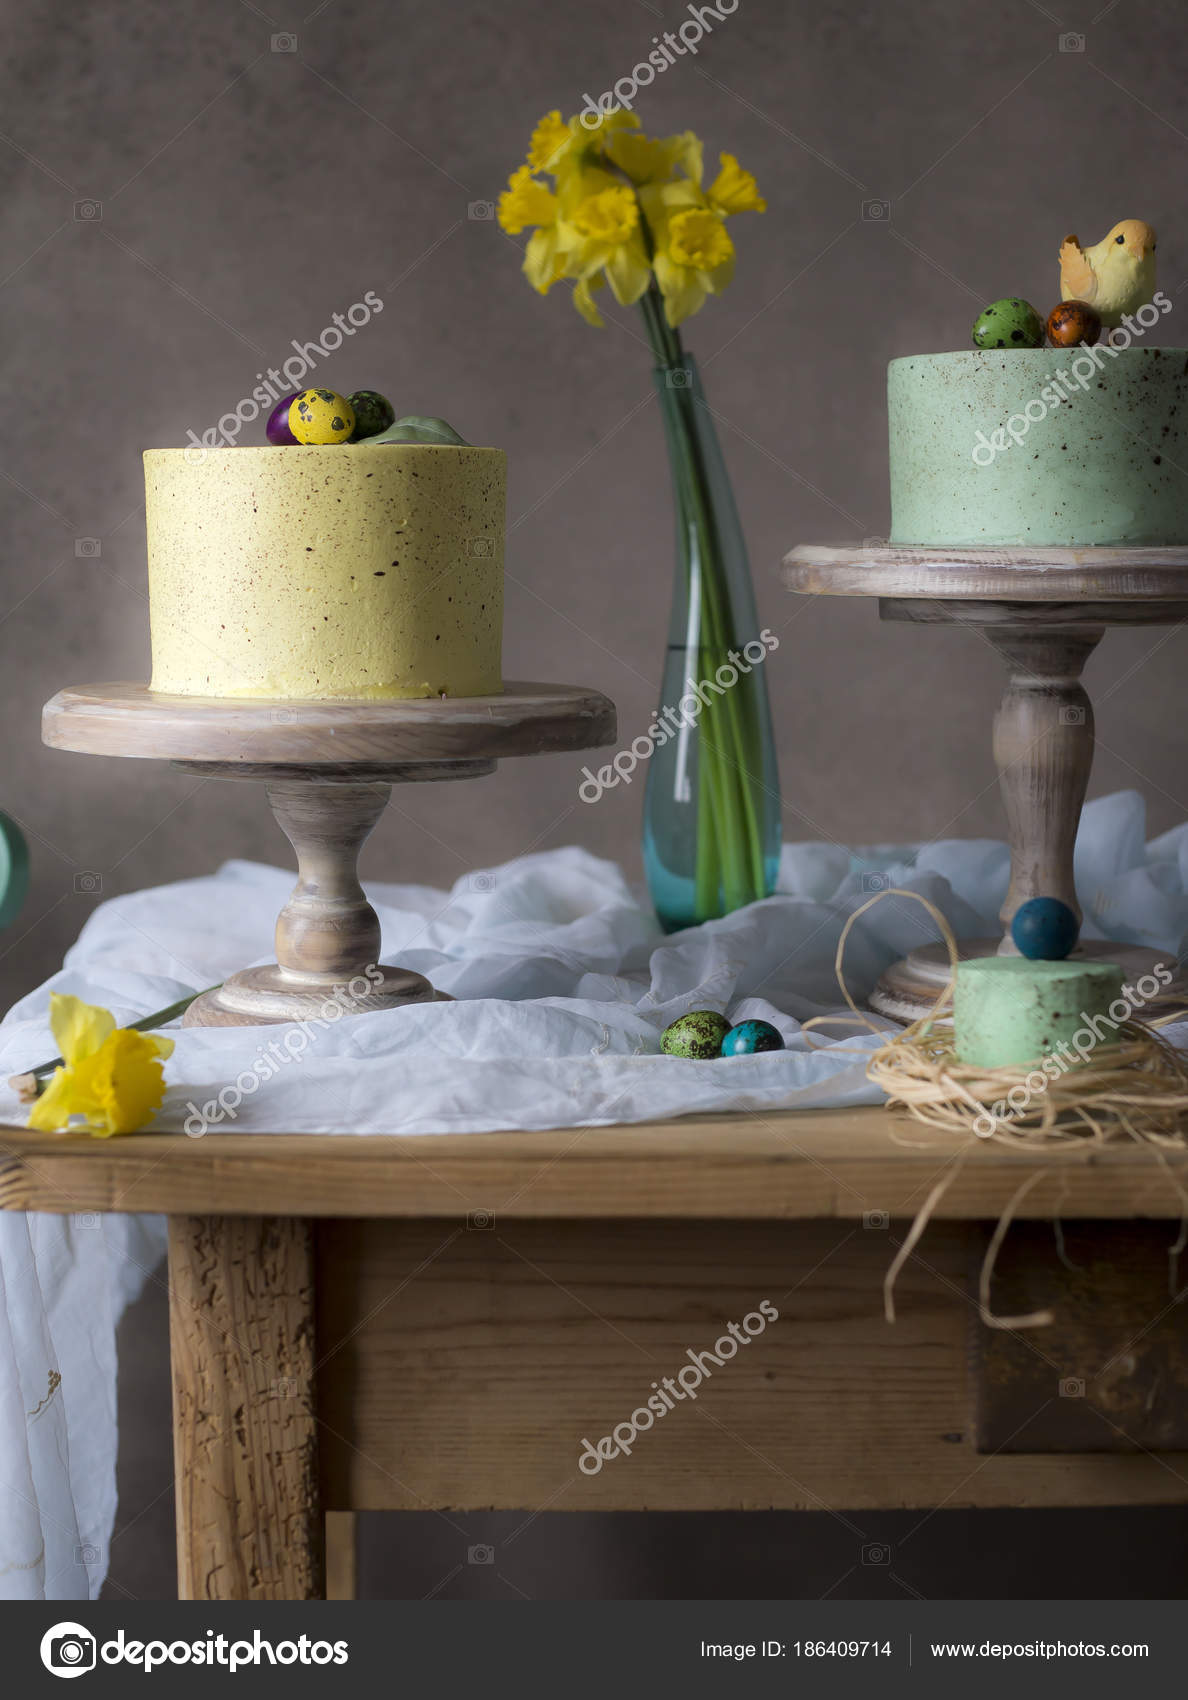 photo decoration easter painted flowers table decor depositphotos tasty cakes stock eggs spring homemade